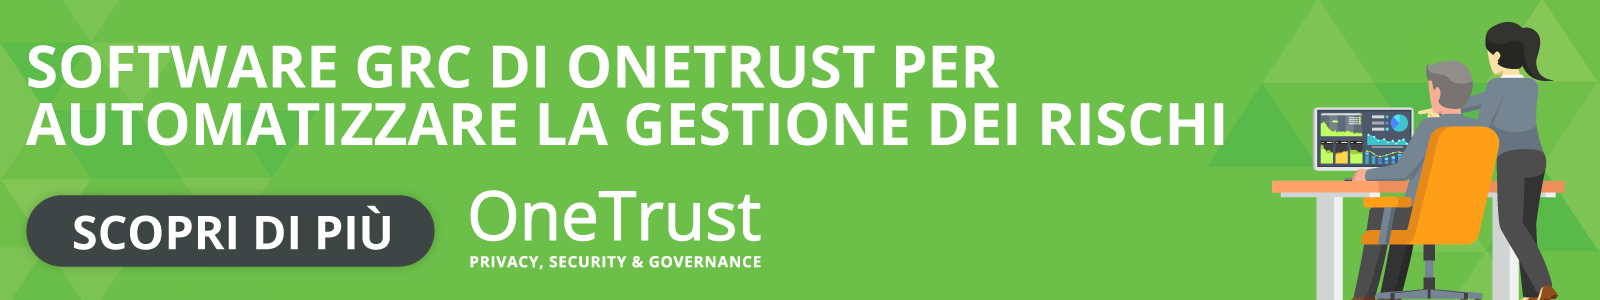 OneTrust GRC Software